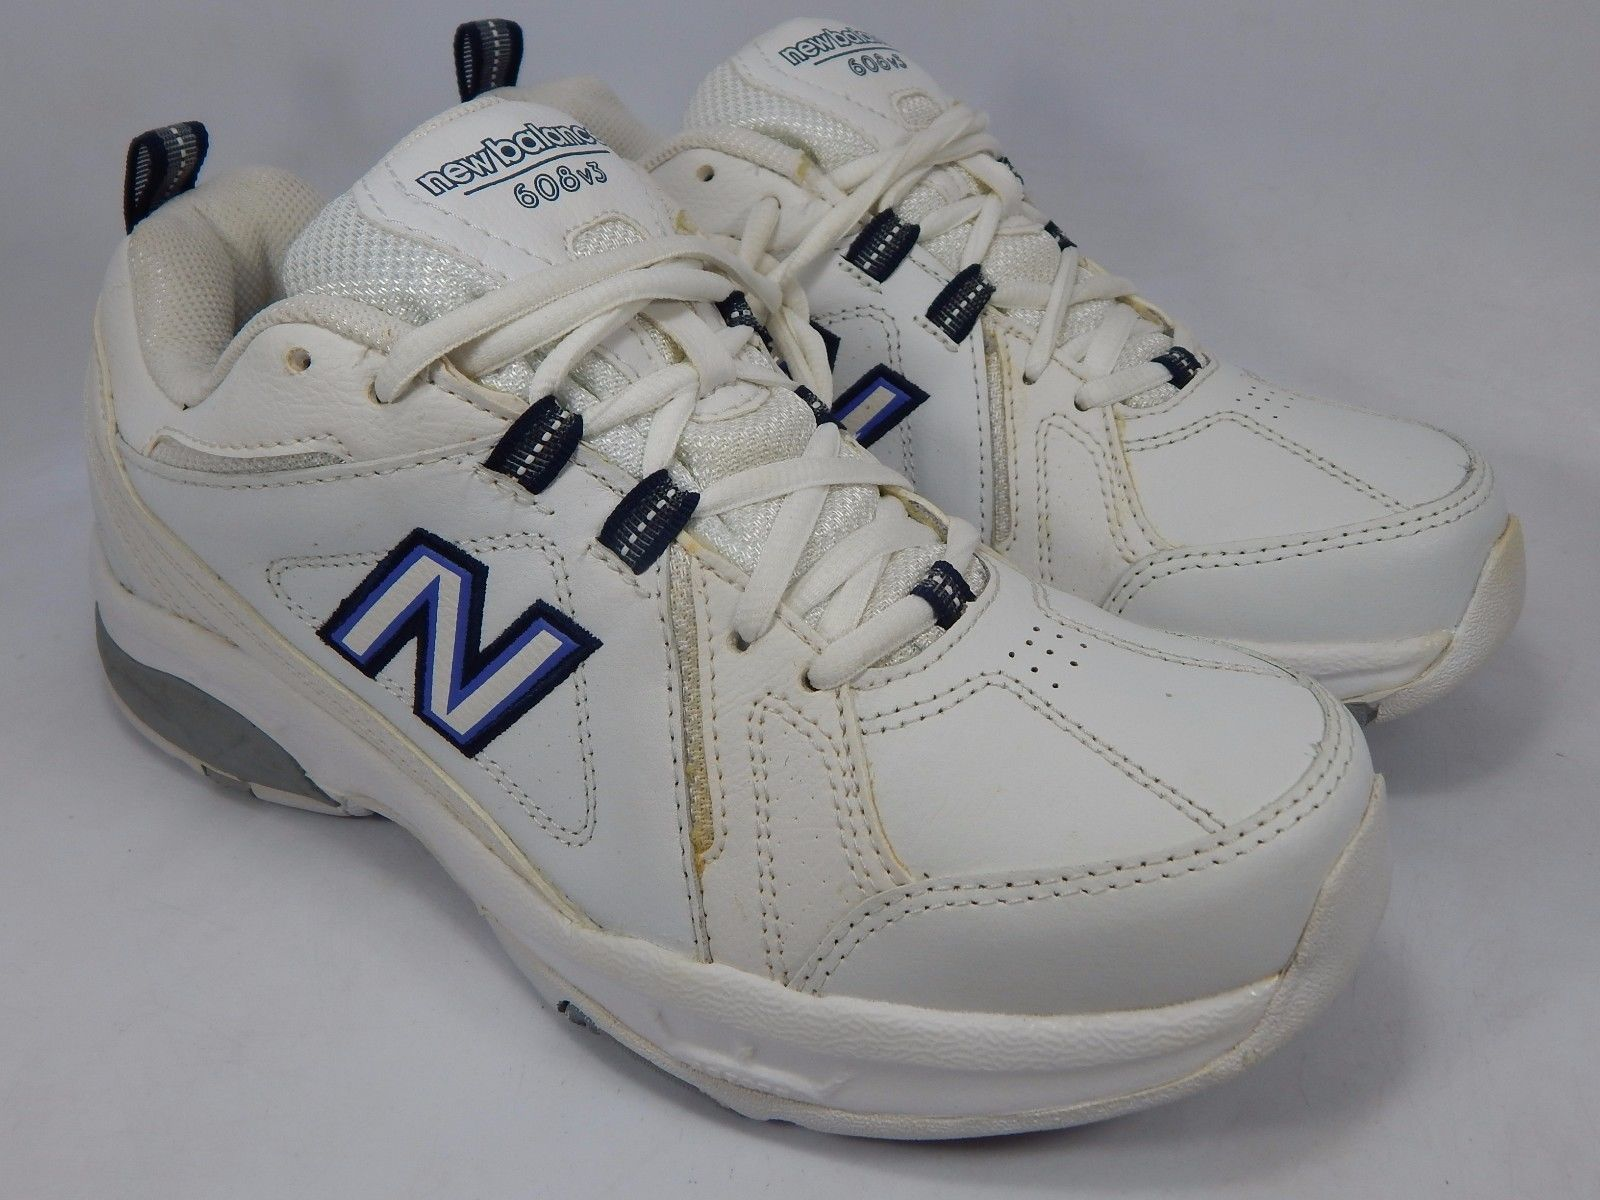 New Balance 608 v3 Women's Cross Trainer Shoes Size US 10 M (B) EU 41.5 WX608V3W